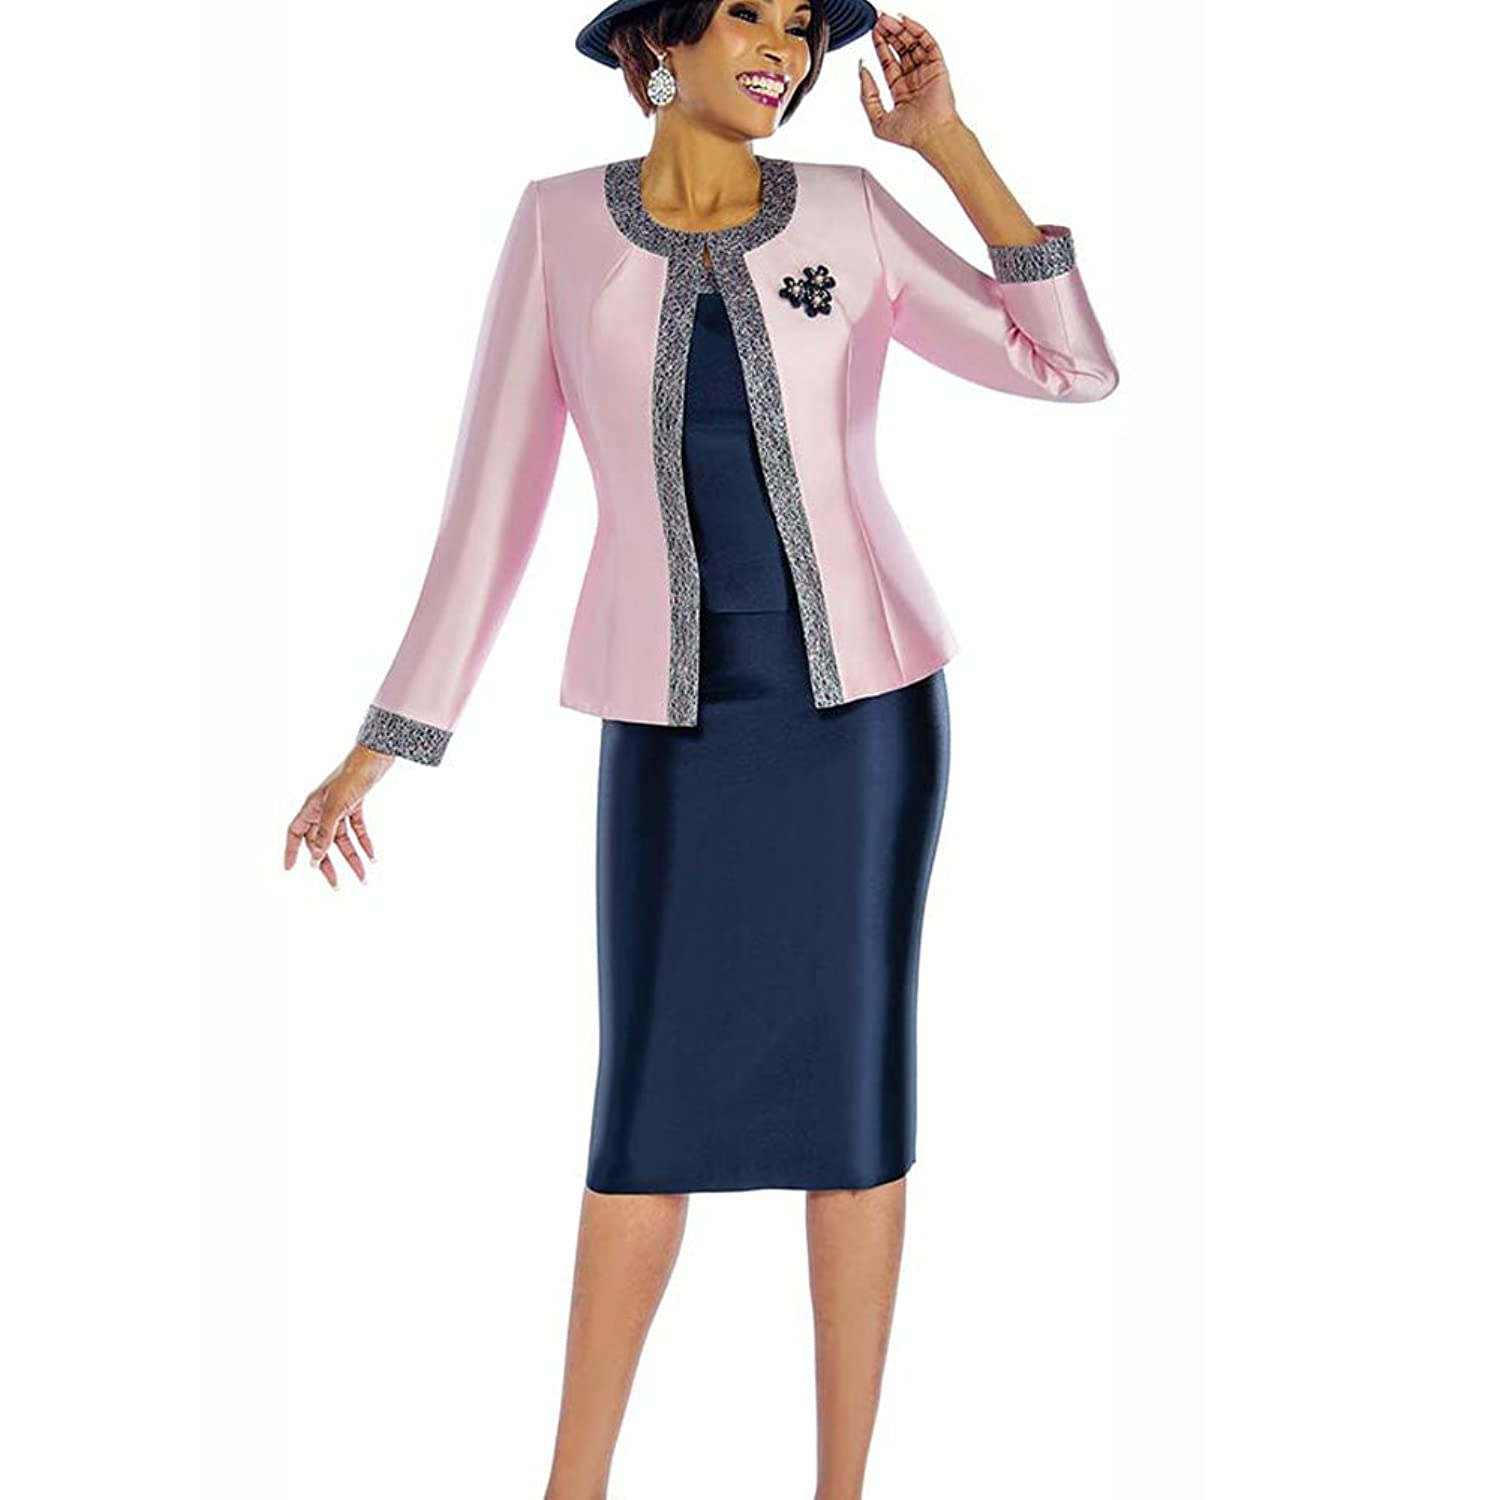 Kueeni Women Church Suits With Hats Dress Suit For Ladies Formal